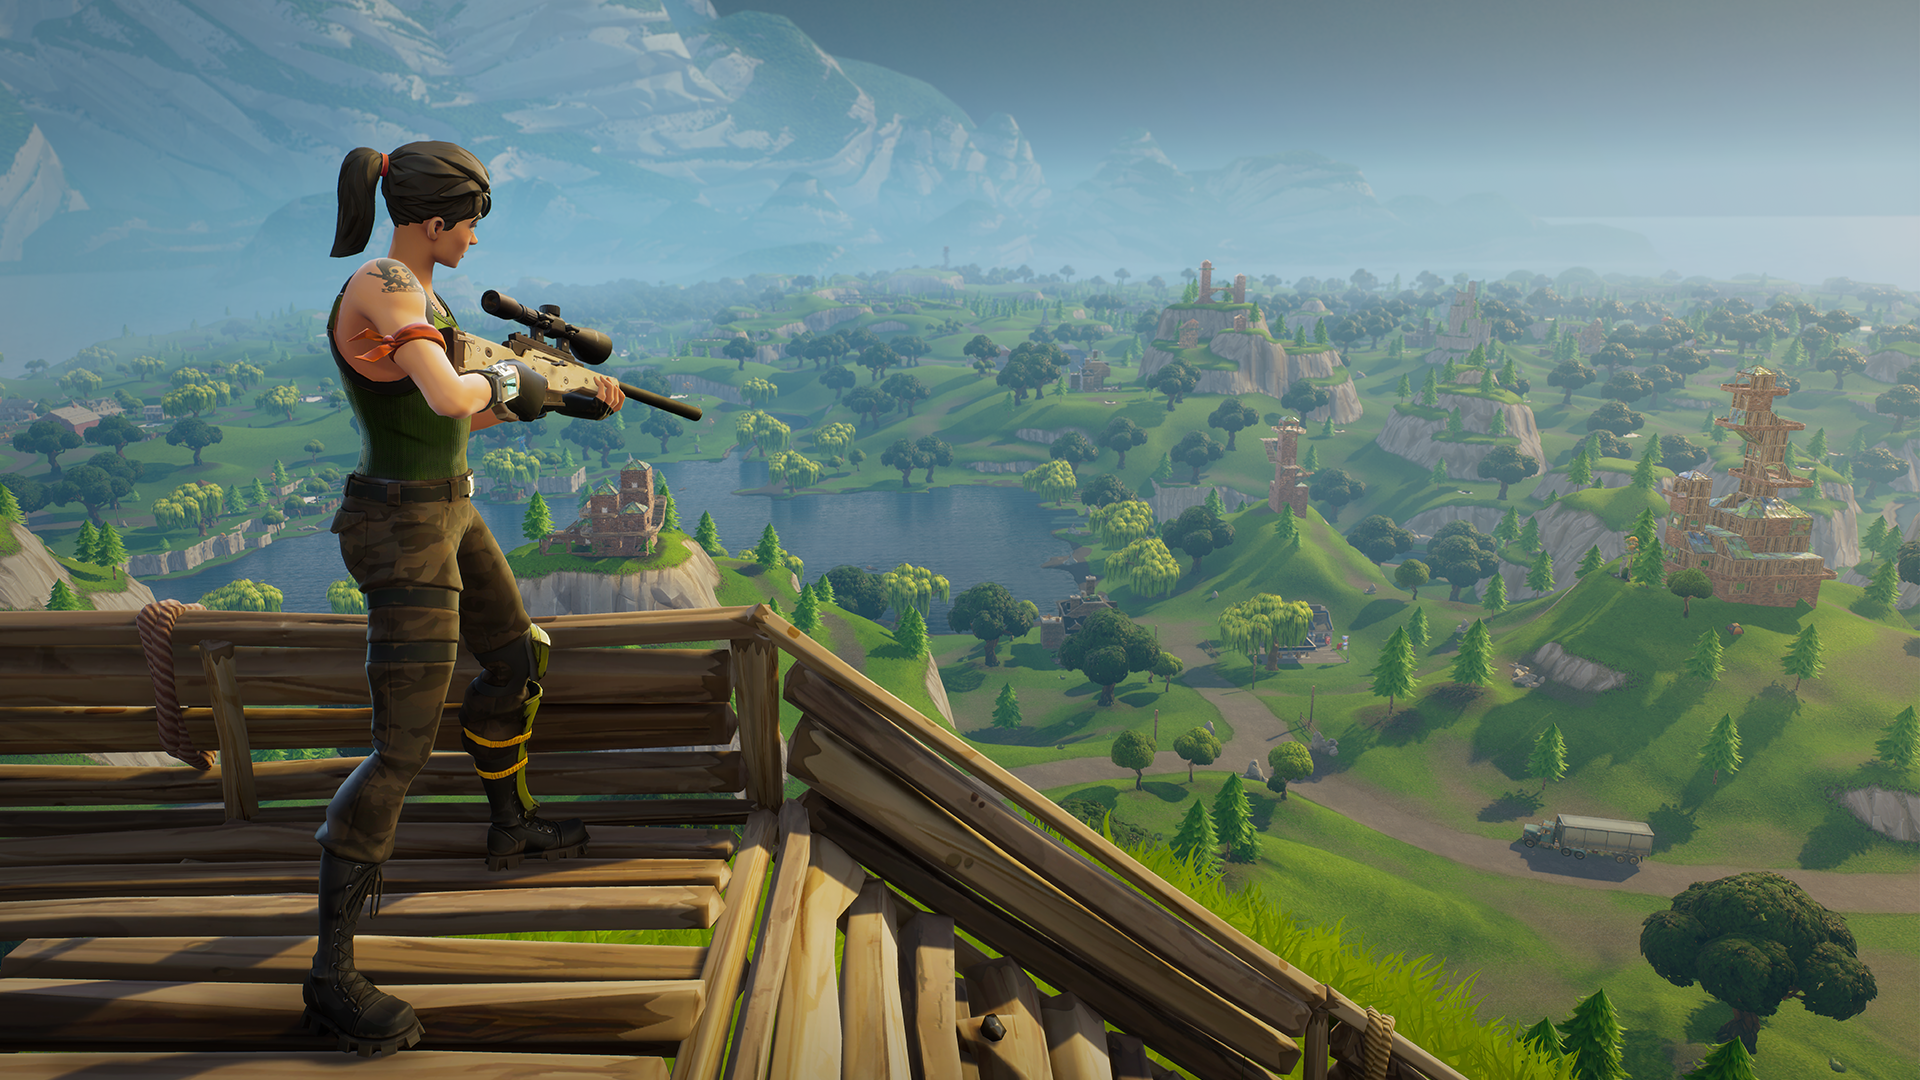 Free Wallpapers For Computer Background Computerbackgroundimages Desktopwallpapers Desktopbackgrounds Hdwallpapers Fortnite Change Tro